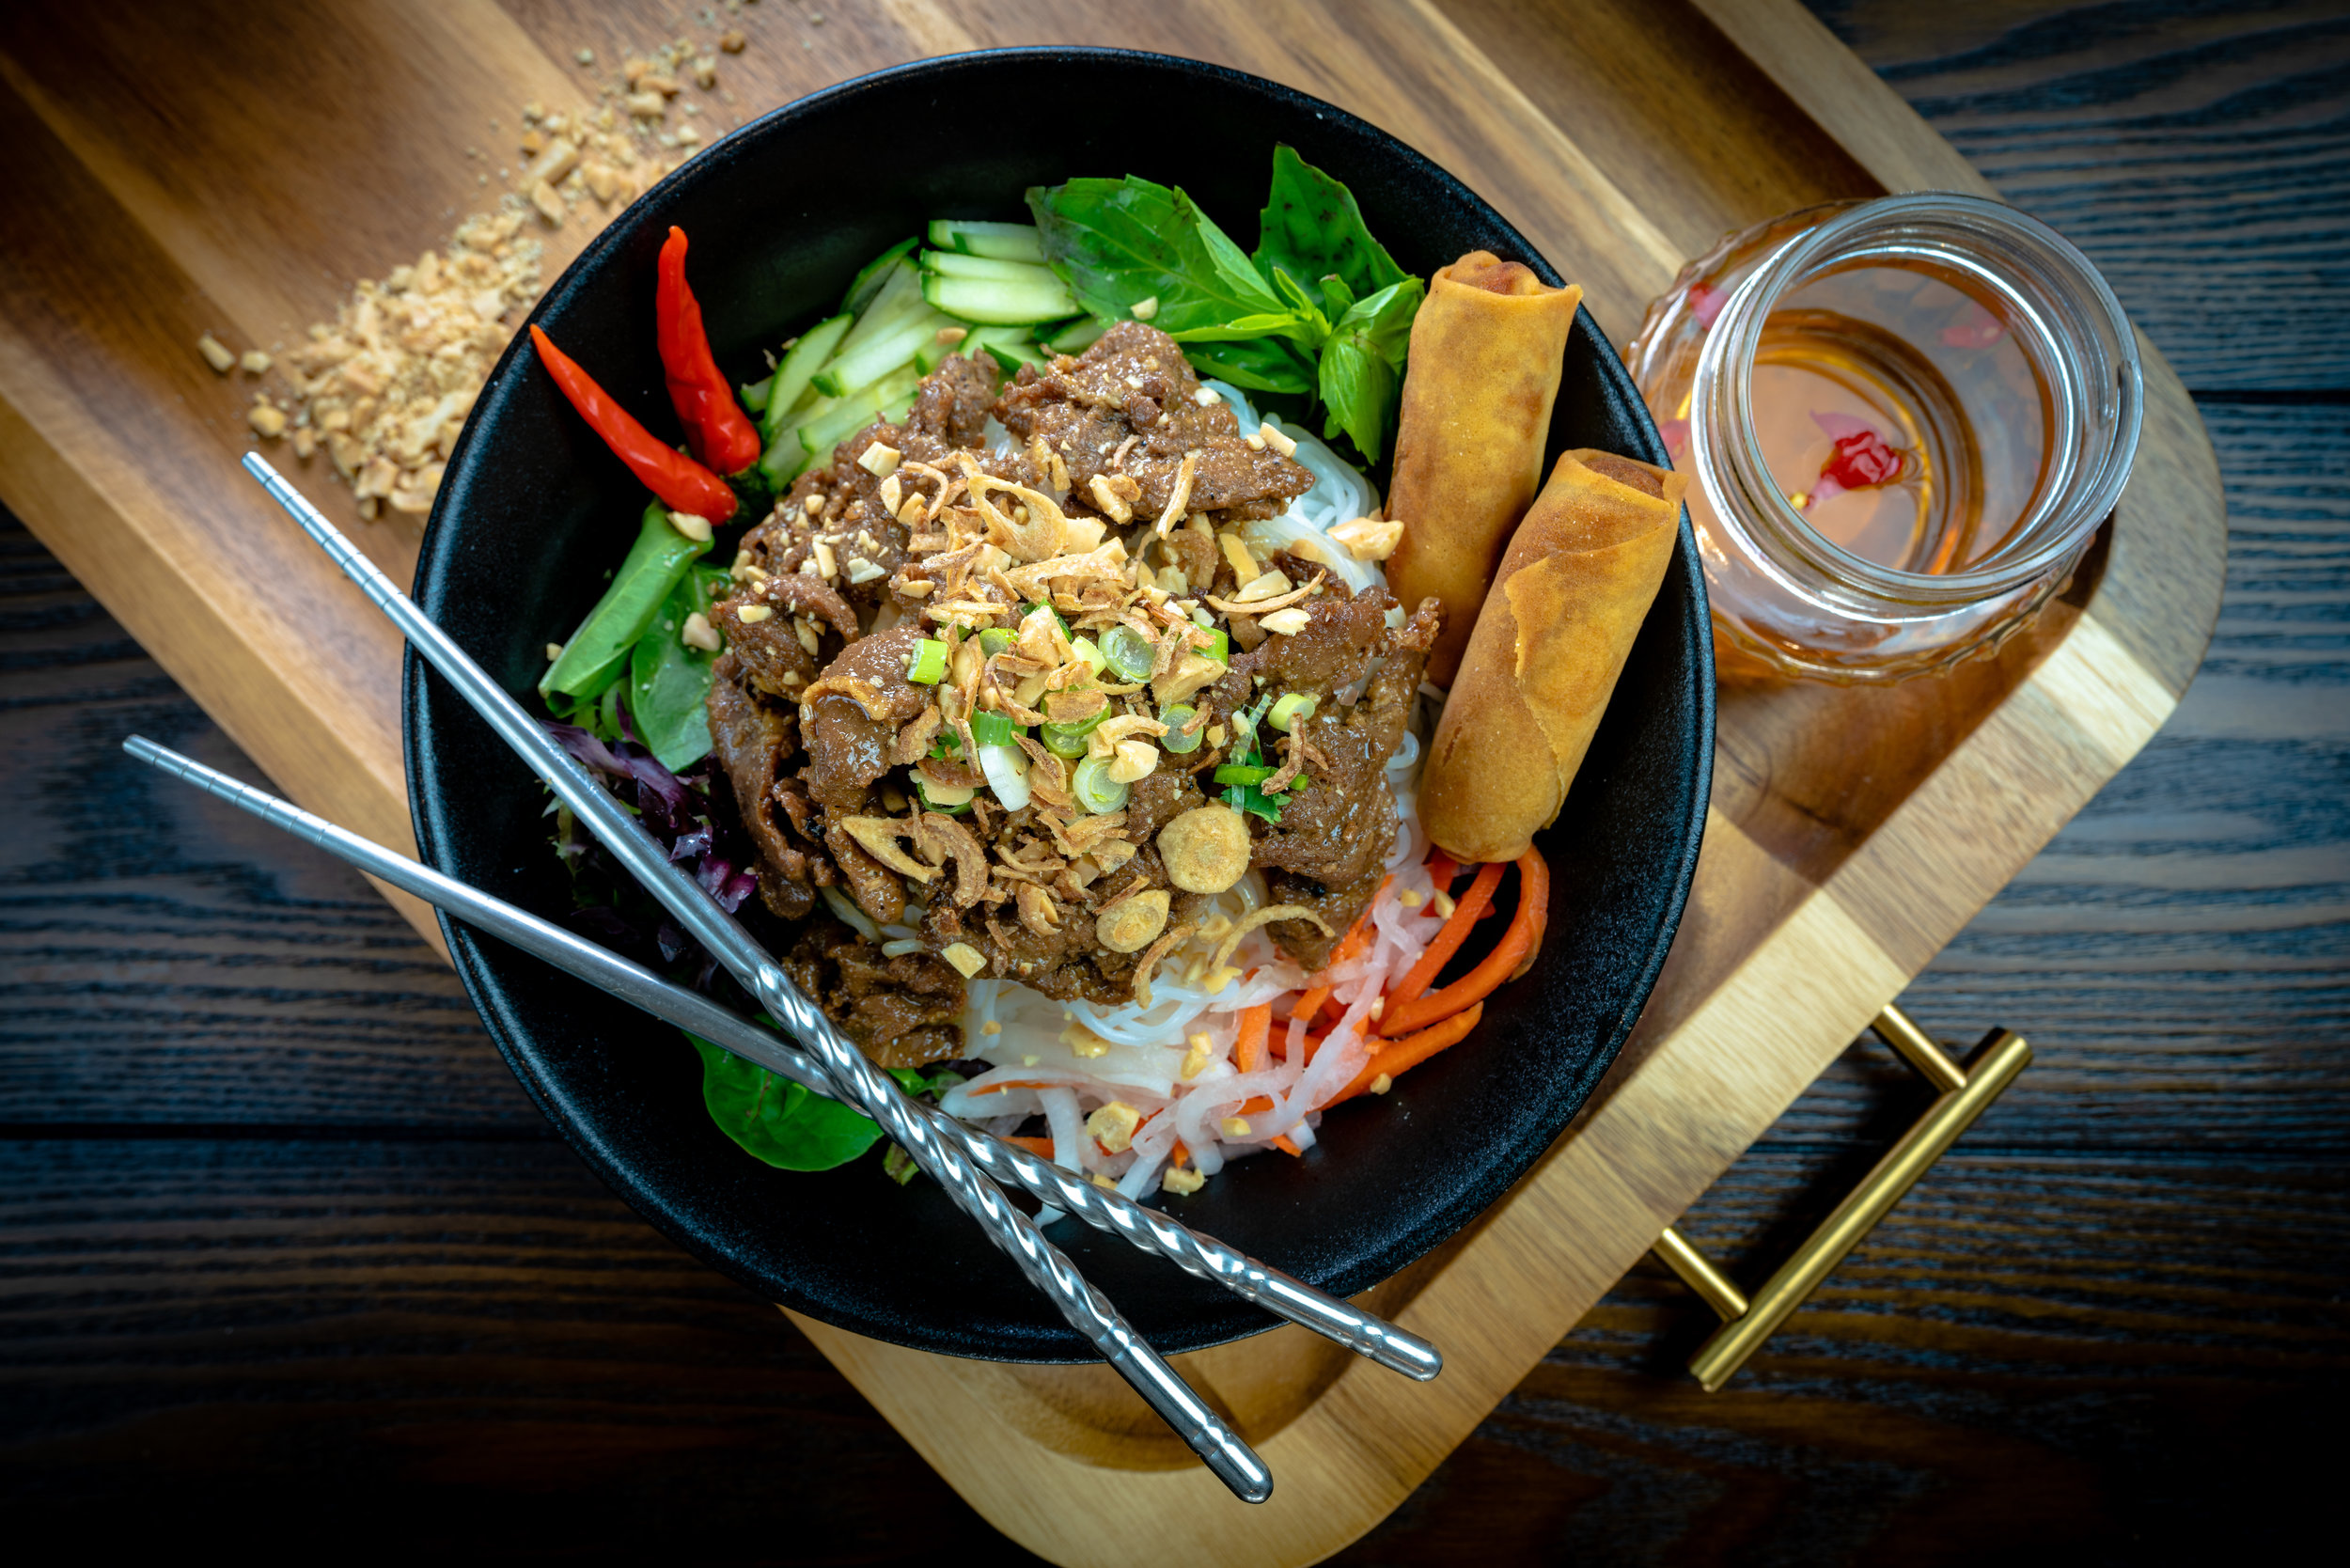 Noodles Salad - Teriyaki Steak + 2 Egg Rolls over Rice Vermicelli, Spring Mix, Cucumber, Pickles